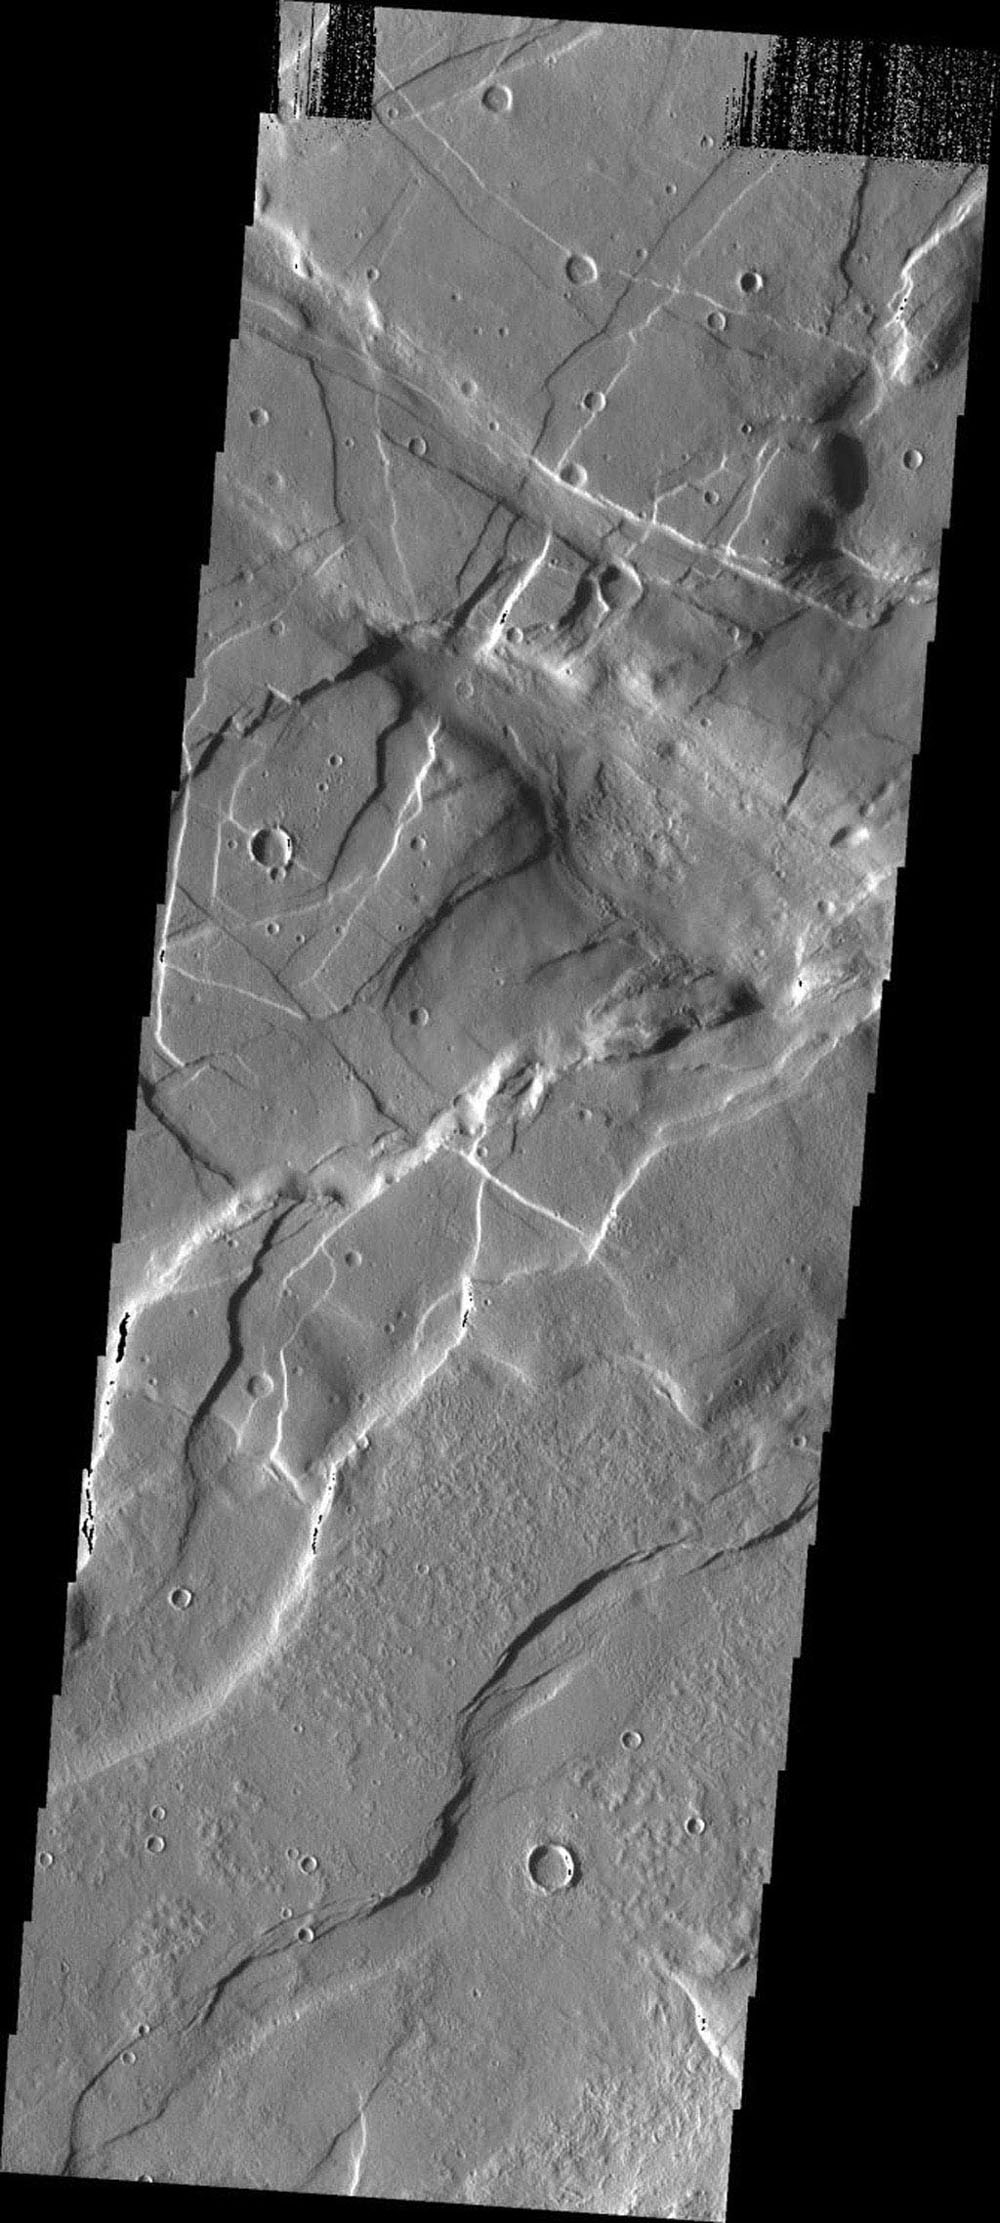 This image taken by NASA's Mars Odyssey shows the region east of Alba Patera on Mars featuring the complex relations that can occur in regions of multiple structural events. There are fractures and graben in this area that intersect at multiple angles.